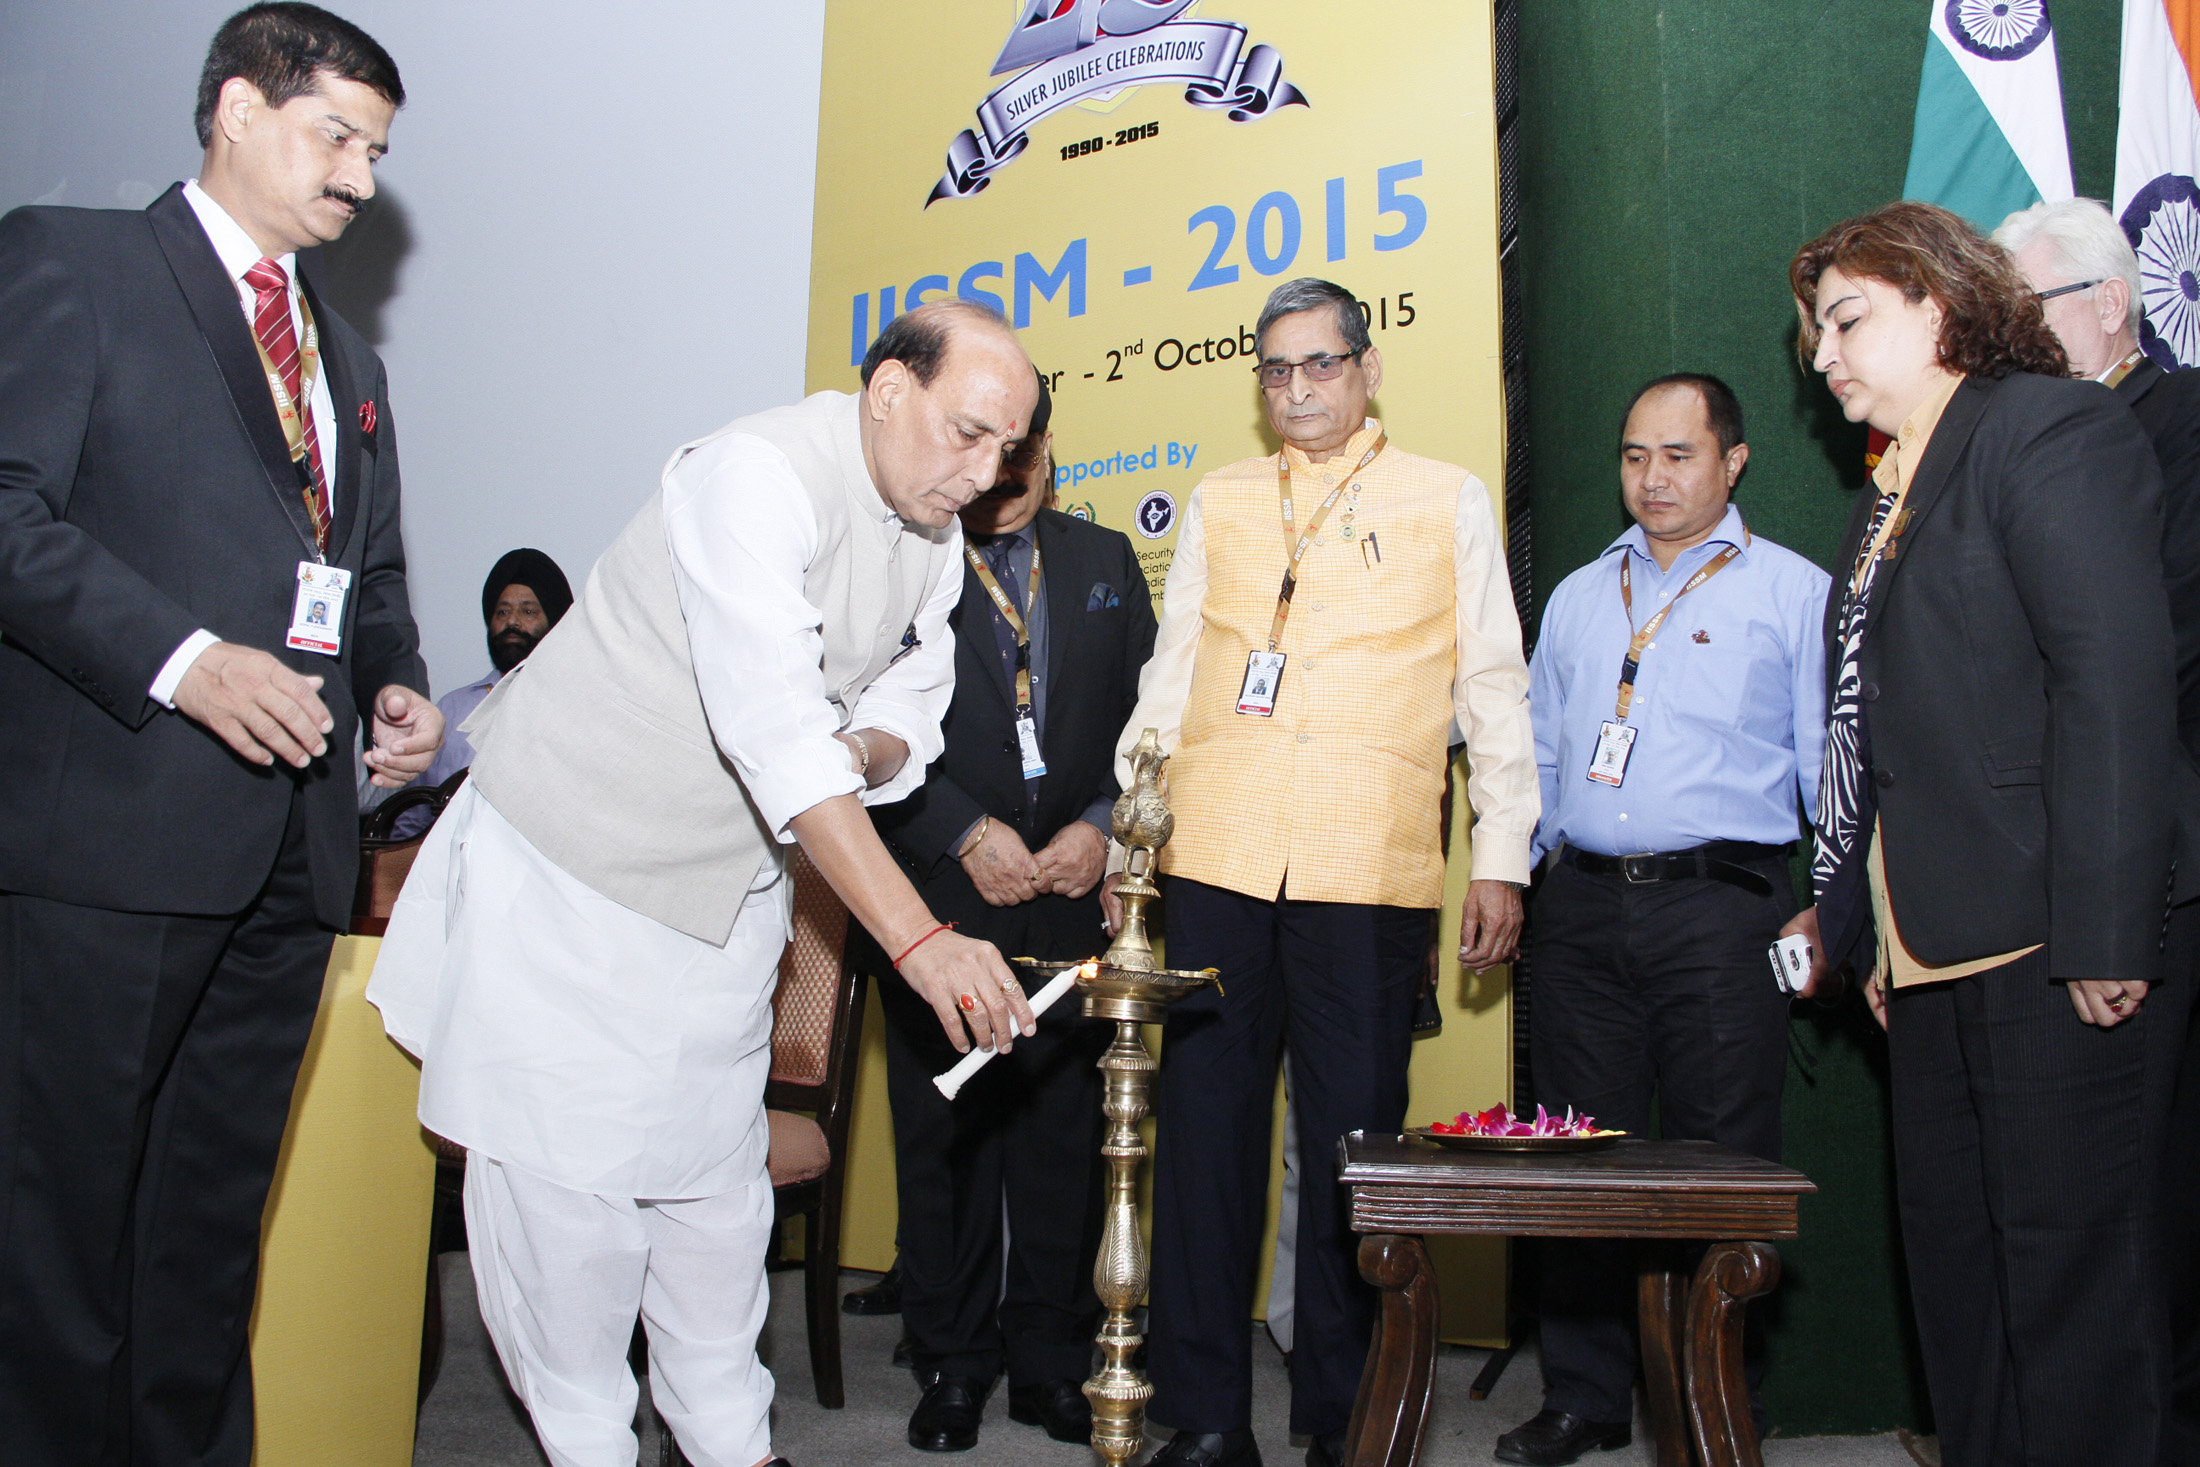 The Union Home Minister, Shri Rajnath Singh lighting the lamp to inaugurate the 25th Annual International Seminar of International Institute of Security and Safety Management (IISSM), in New Delhi on October 01, 2015.